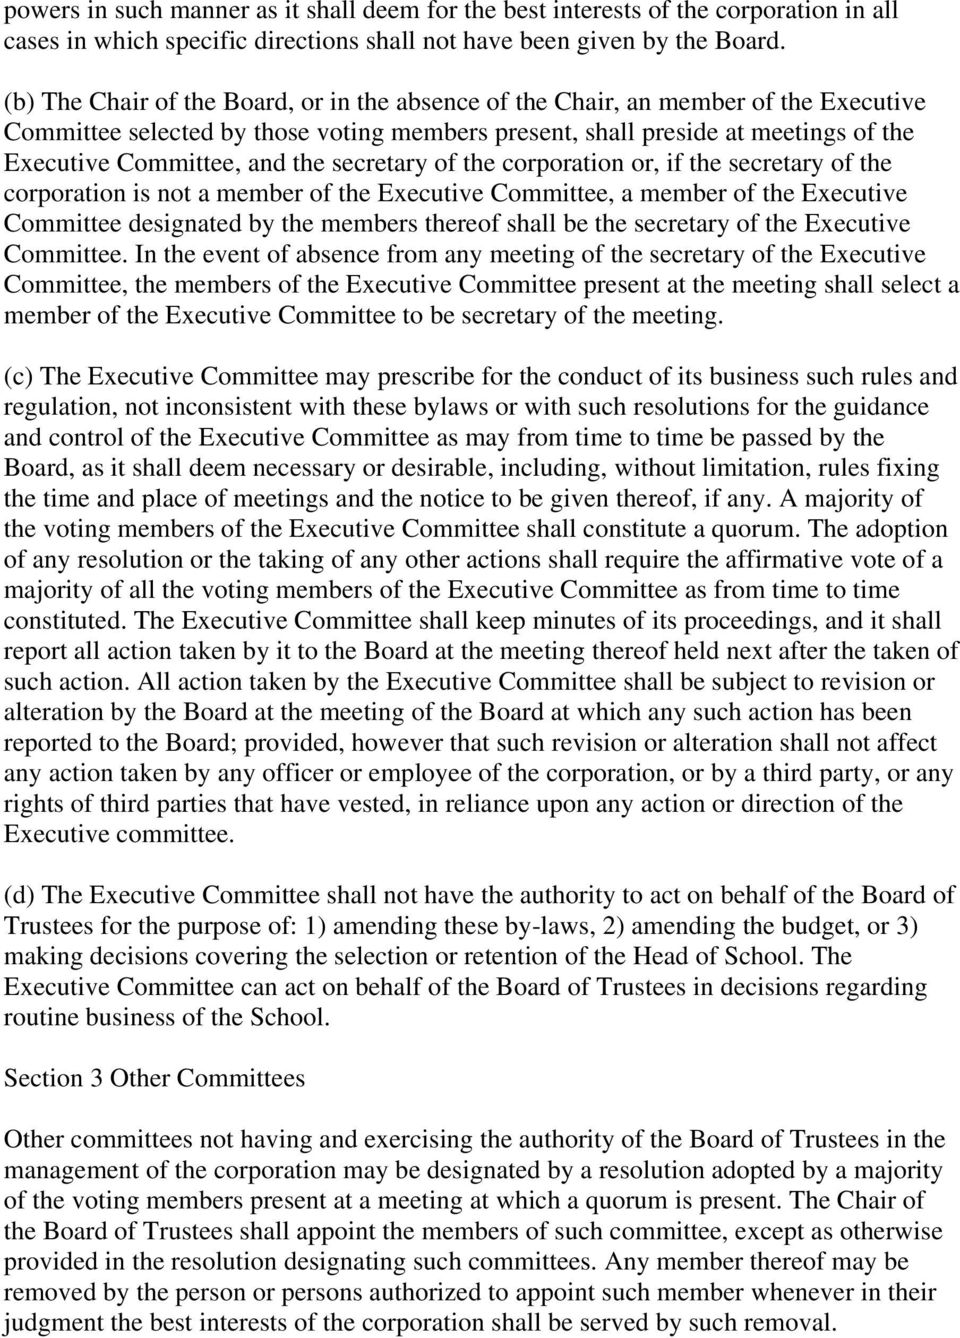 the secretary of the corporation or, if the secretary of the corporation is not a member of the Executive Committee, a member of the Executive Committee designated by the members thereof shall be the